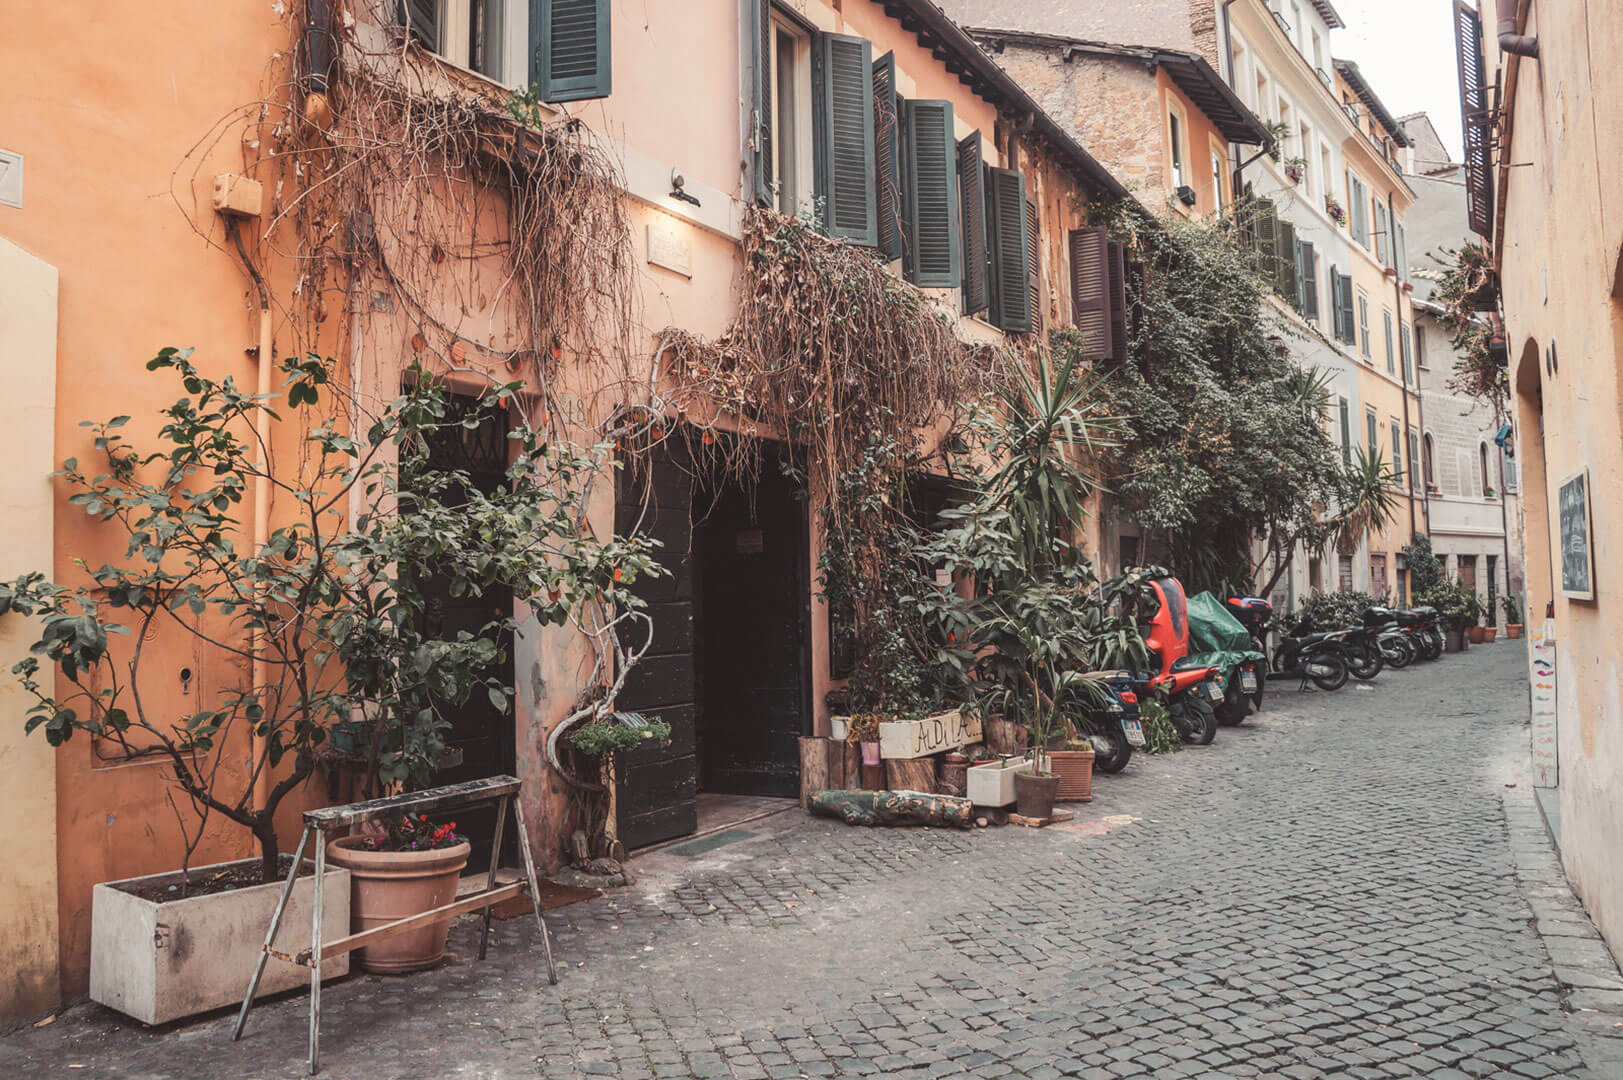 rome-italy-la-vie-en-blog-all-rights-reserved-47